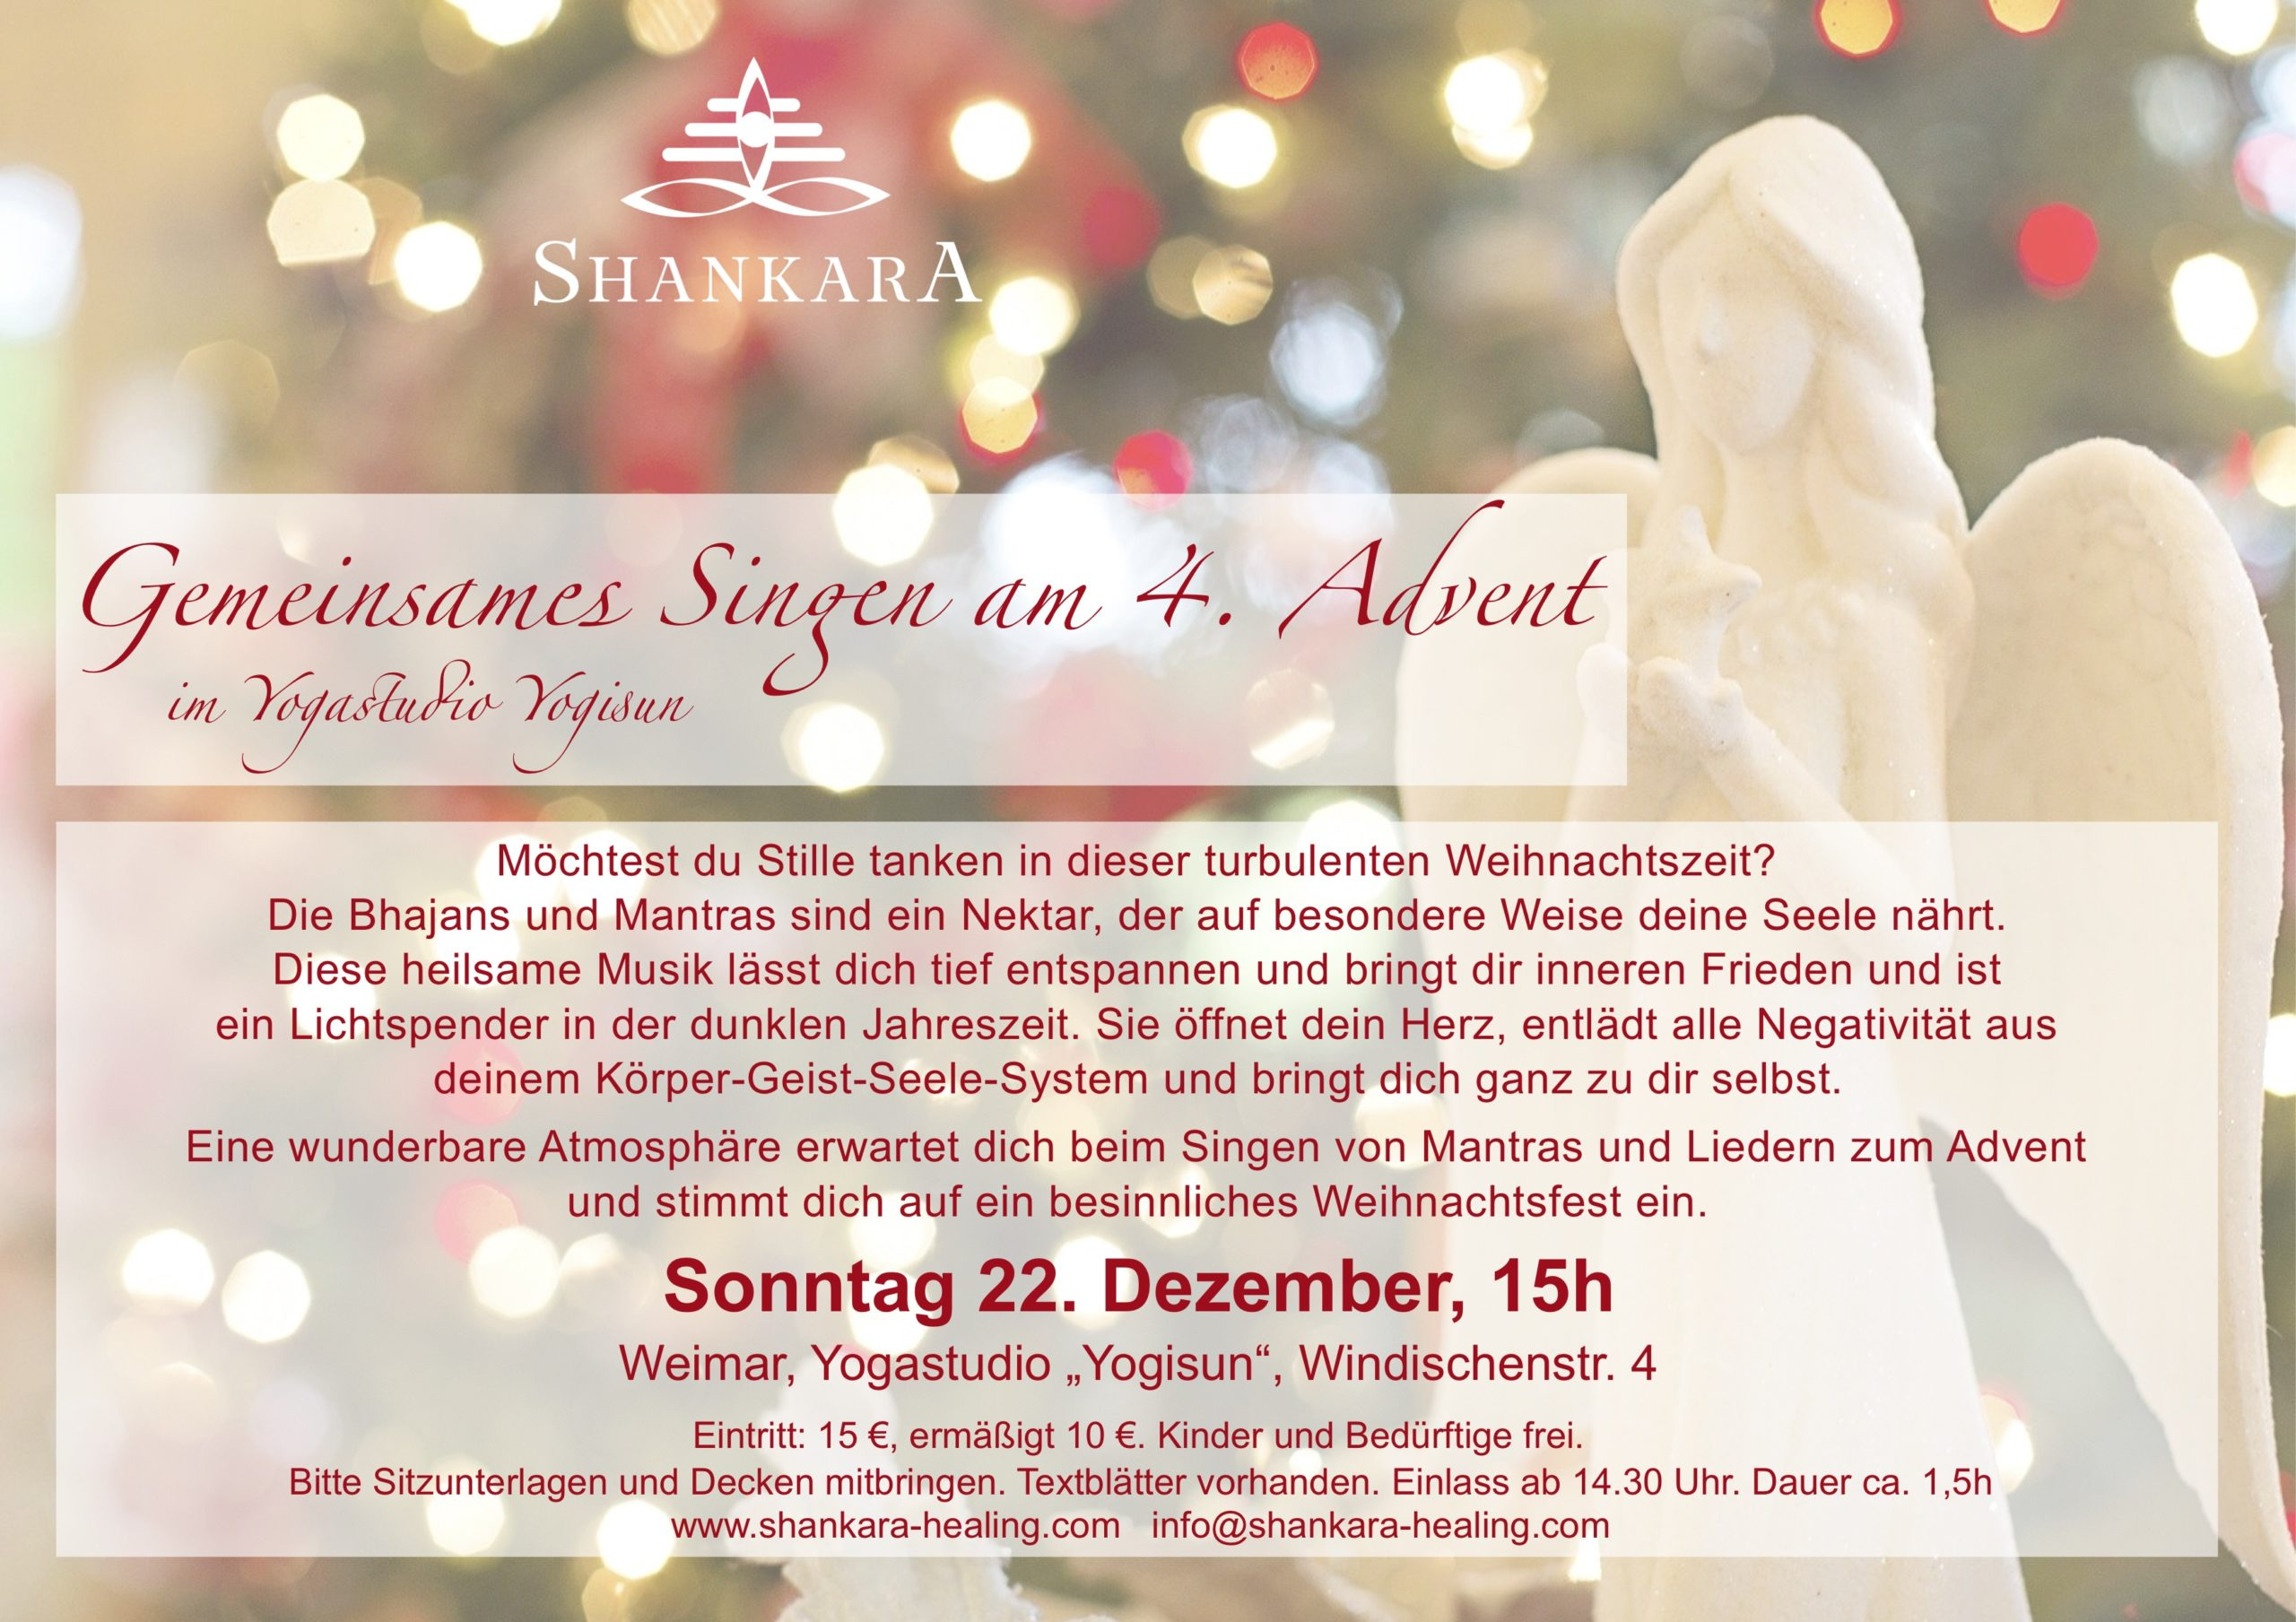 Gemeinsames Singen am 4. Advent